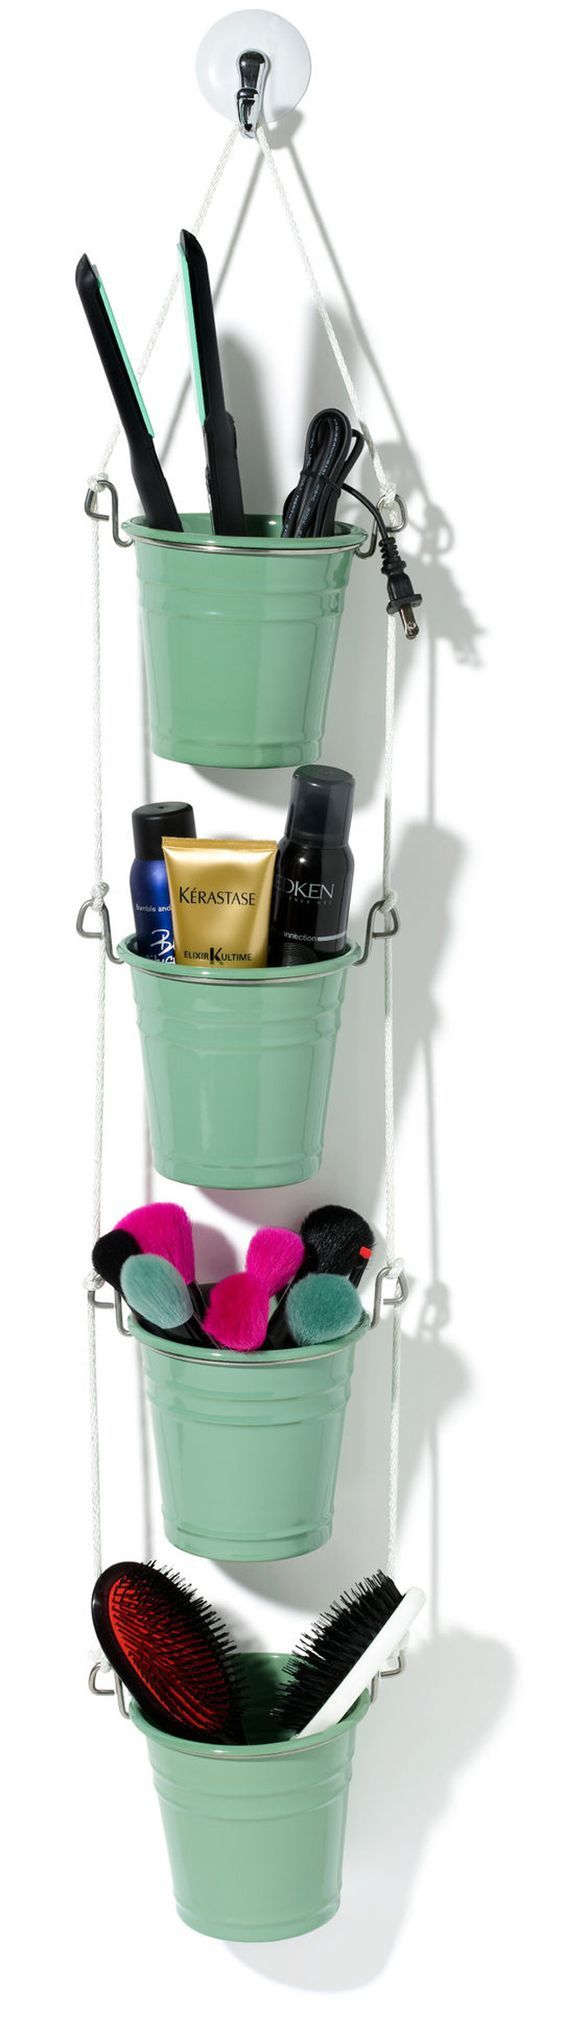 Cute Hanging Organizer | Easy and Creative Bathroom Organizer for Girls by DIY Ready at http://diyready.com/organization-hacks-bathroom-storage-ideas/: